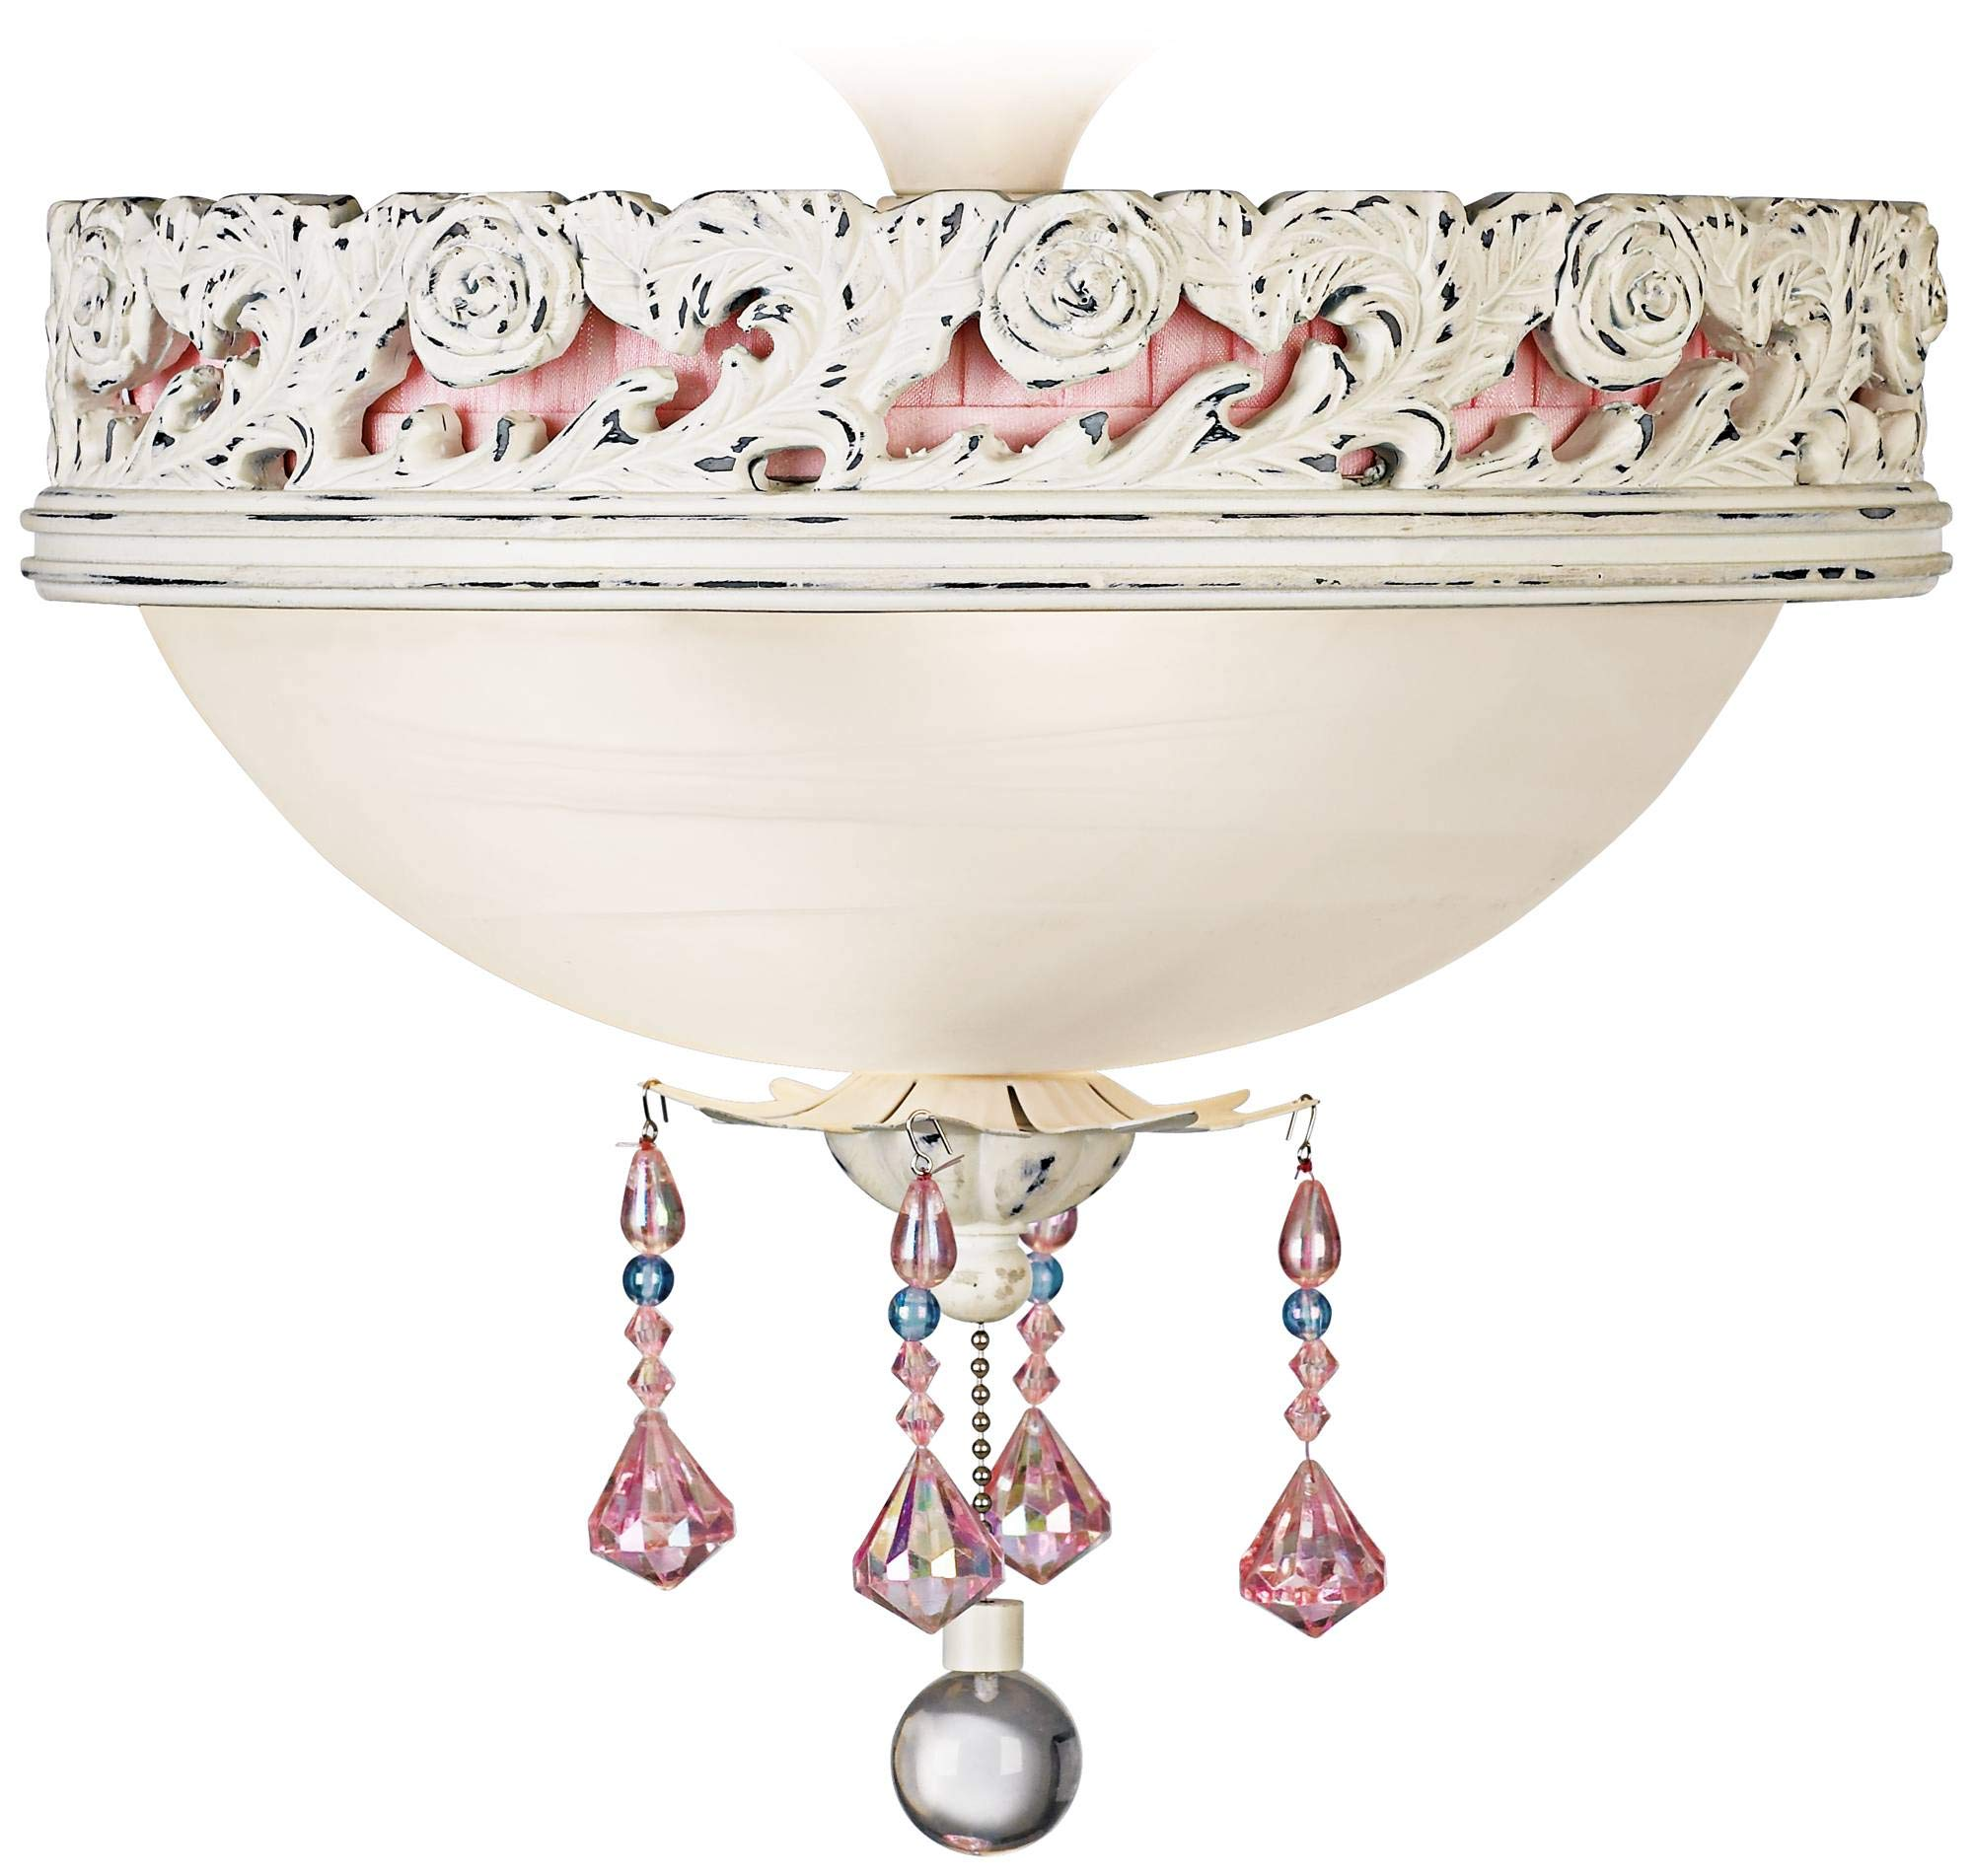 Pretty in Pink Pull Chain Ceiling Fan 2-Light LED Light Kit